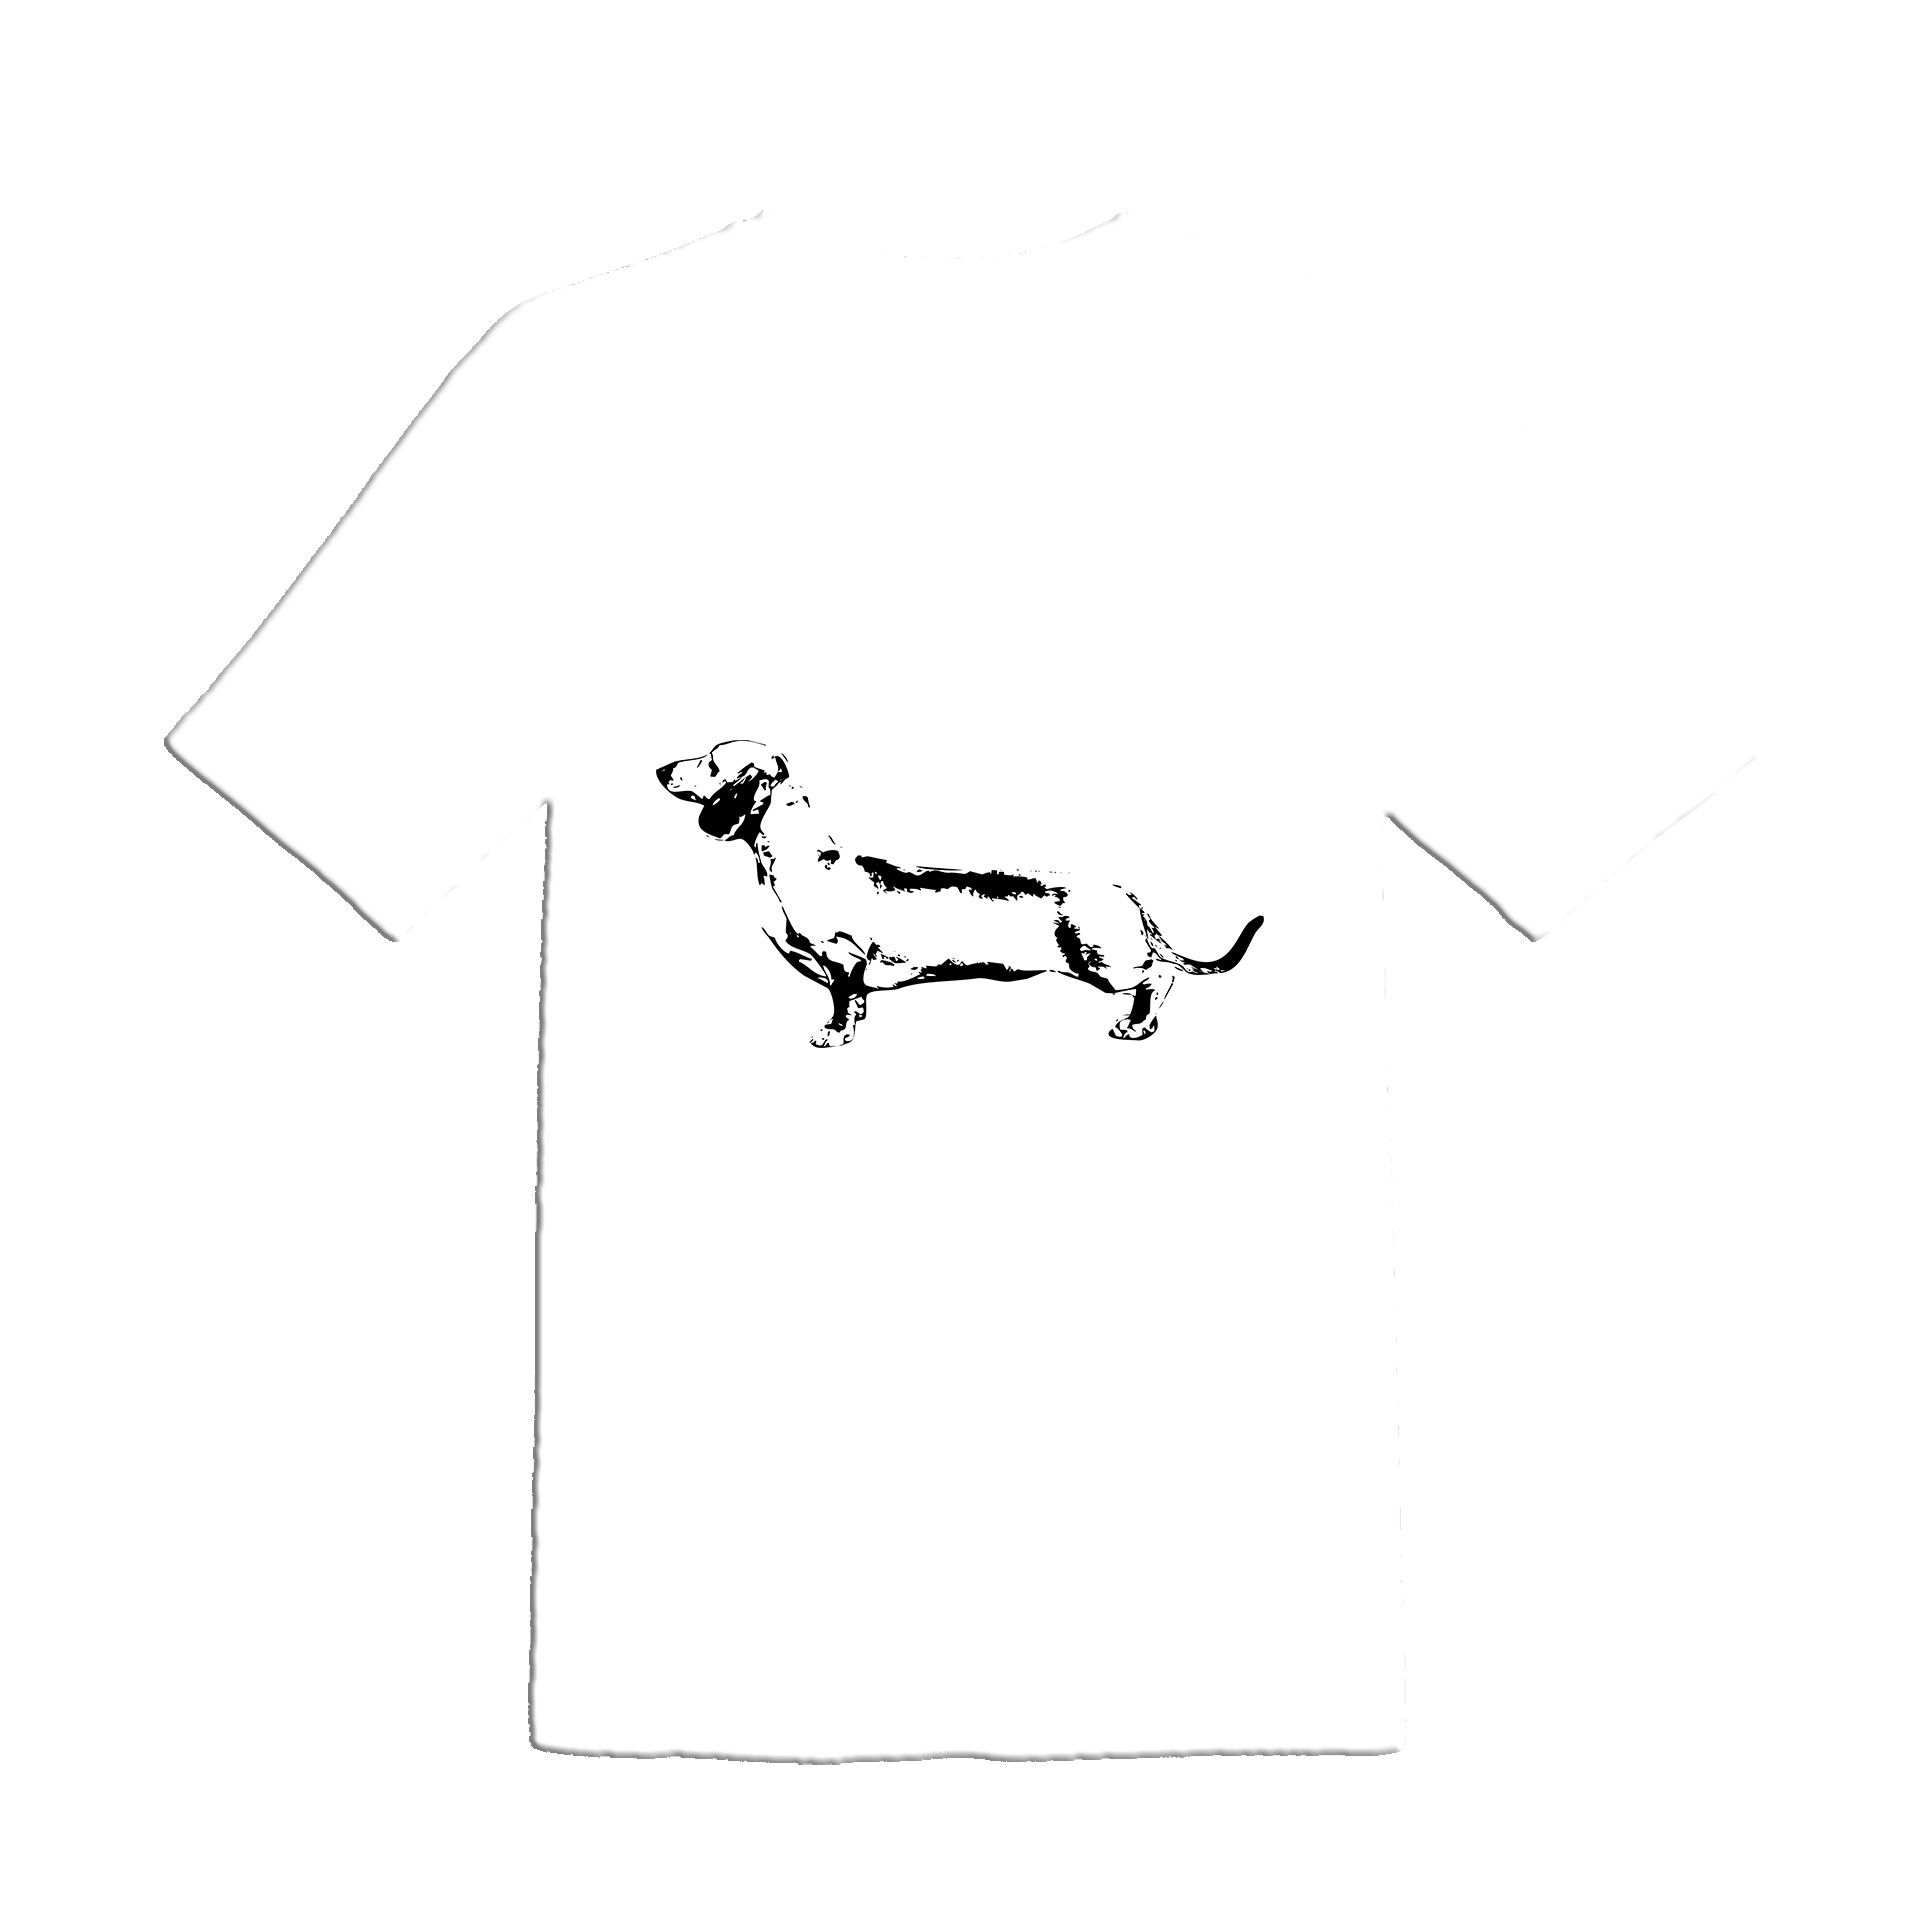 dachshund outline stencil weiner dog vector art images for cut files or prints  [ 1920 x 1929 Pixel ]